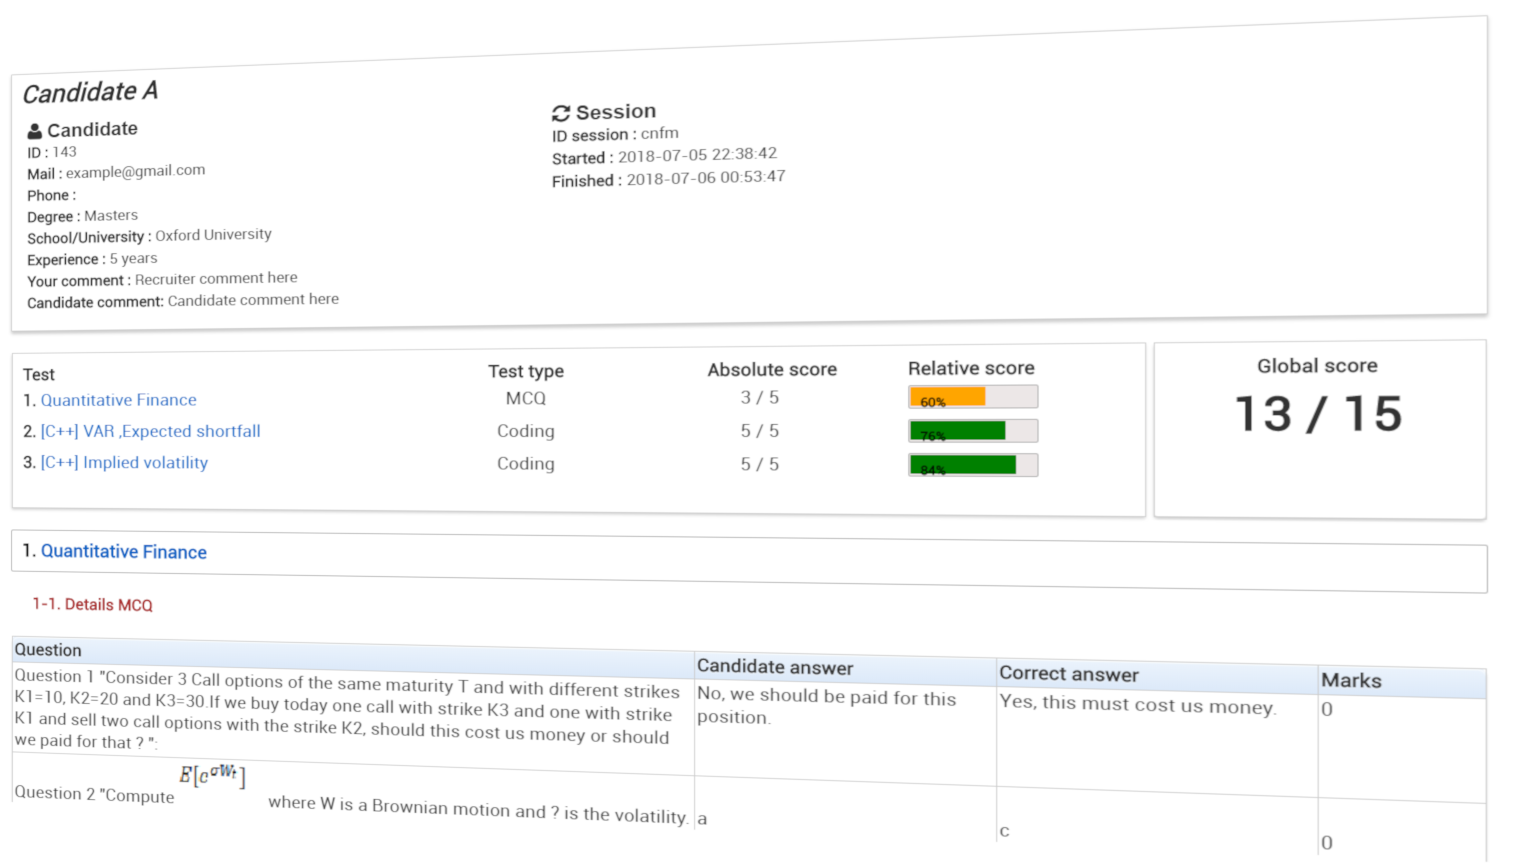 Compare and filter based on technical assessment result: